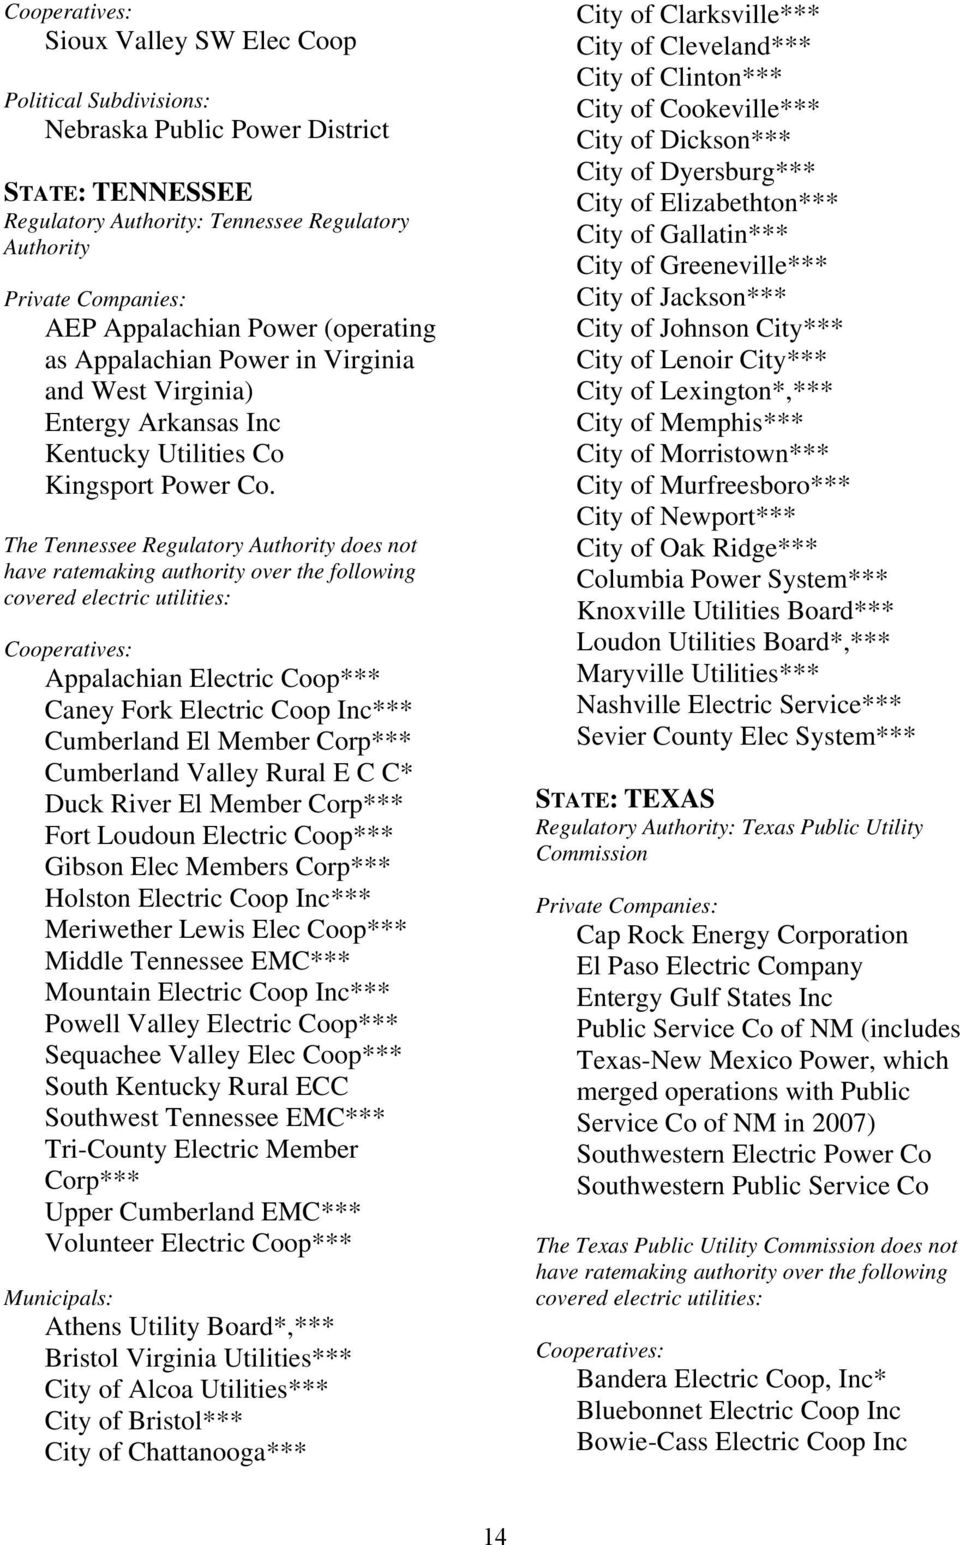 The Tennessee Regulatory Authority does not Appalachian Electric Coop*** Caney Fork Electric Coop Inc*** Cumberland El Member Corp*** Cumberland Valley Rural E C C* Duck River El Member Corp*** Fort